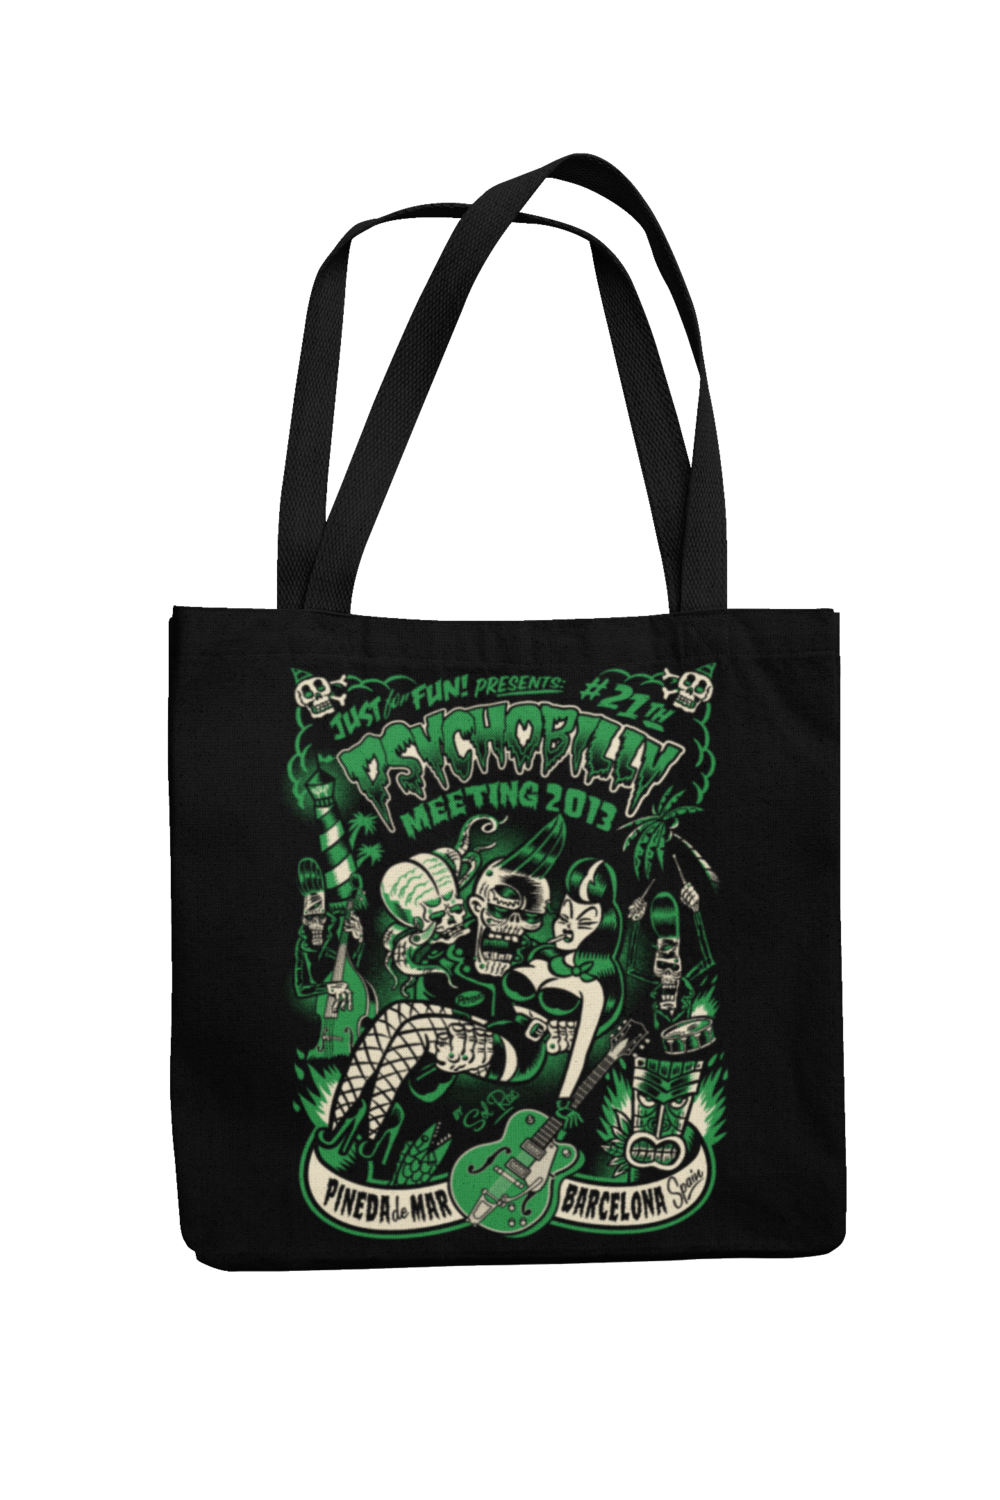 Cotton Bag Psychobilly meeting design by Solrac 2013